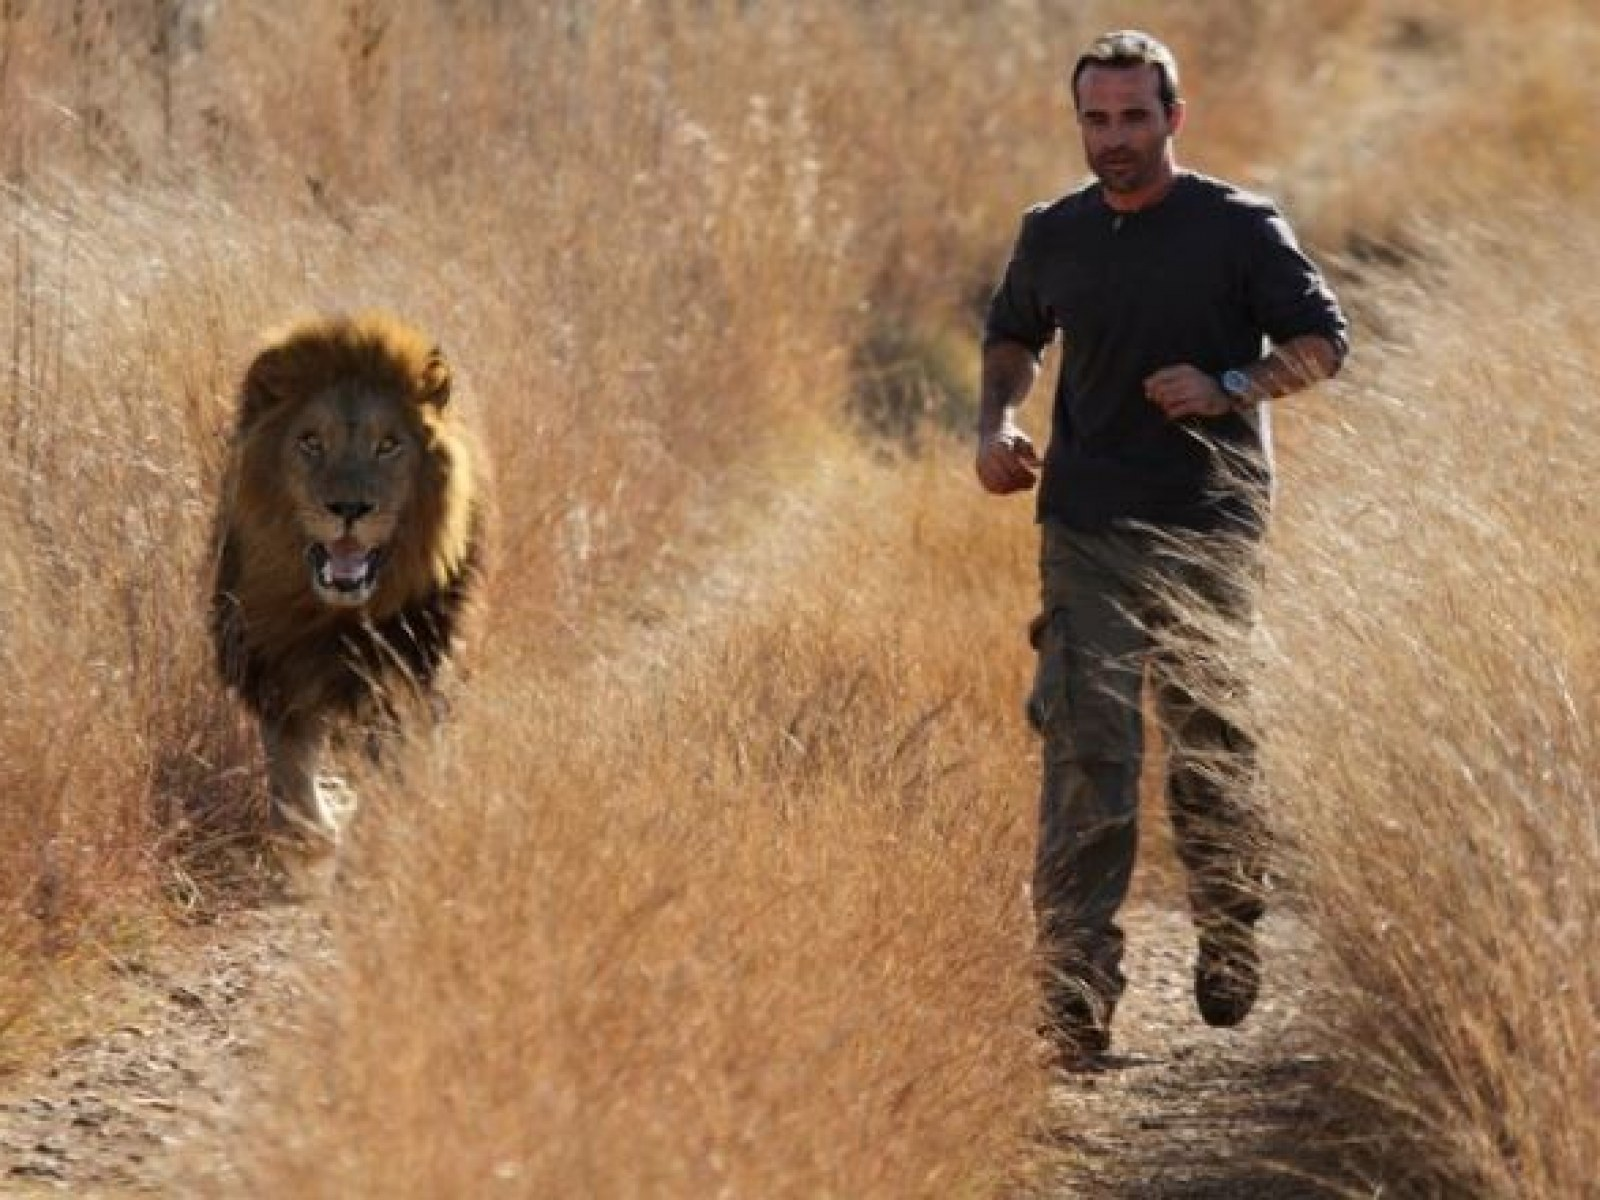 Lion Whisperer' Breaks Silence After Lioness in His Care